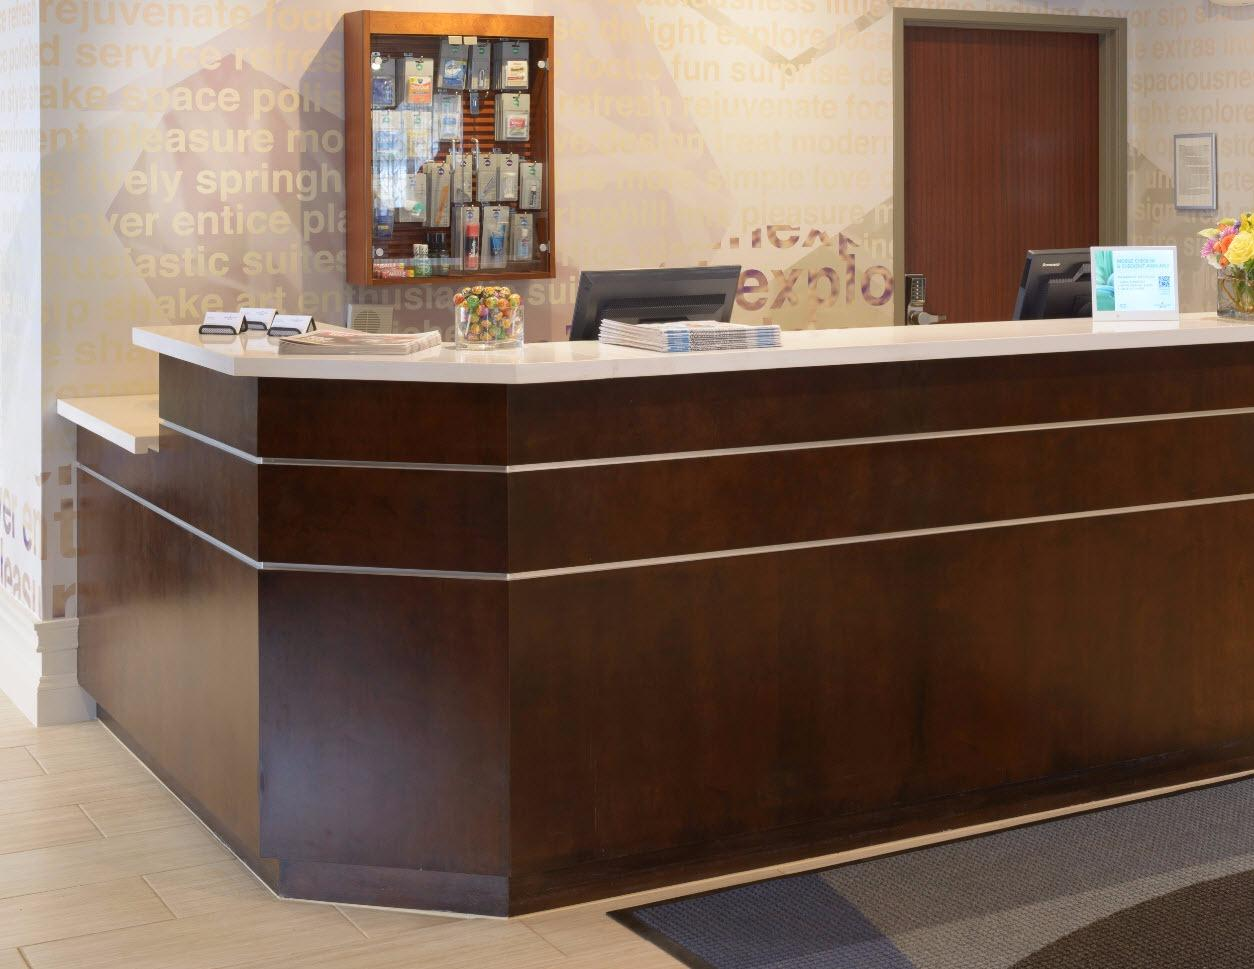 SpringHill Suites by Marriott St. Louis Chesterfield image 1